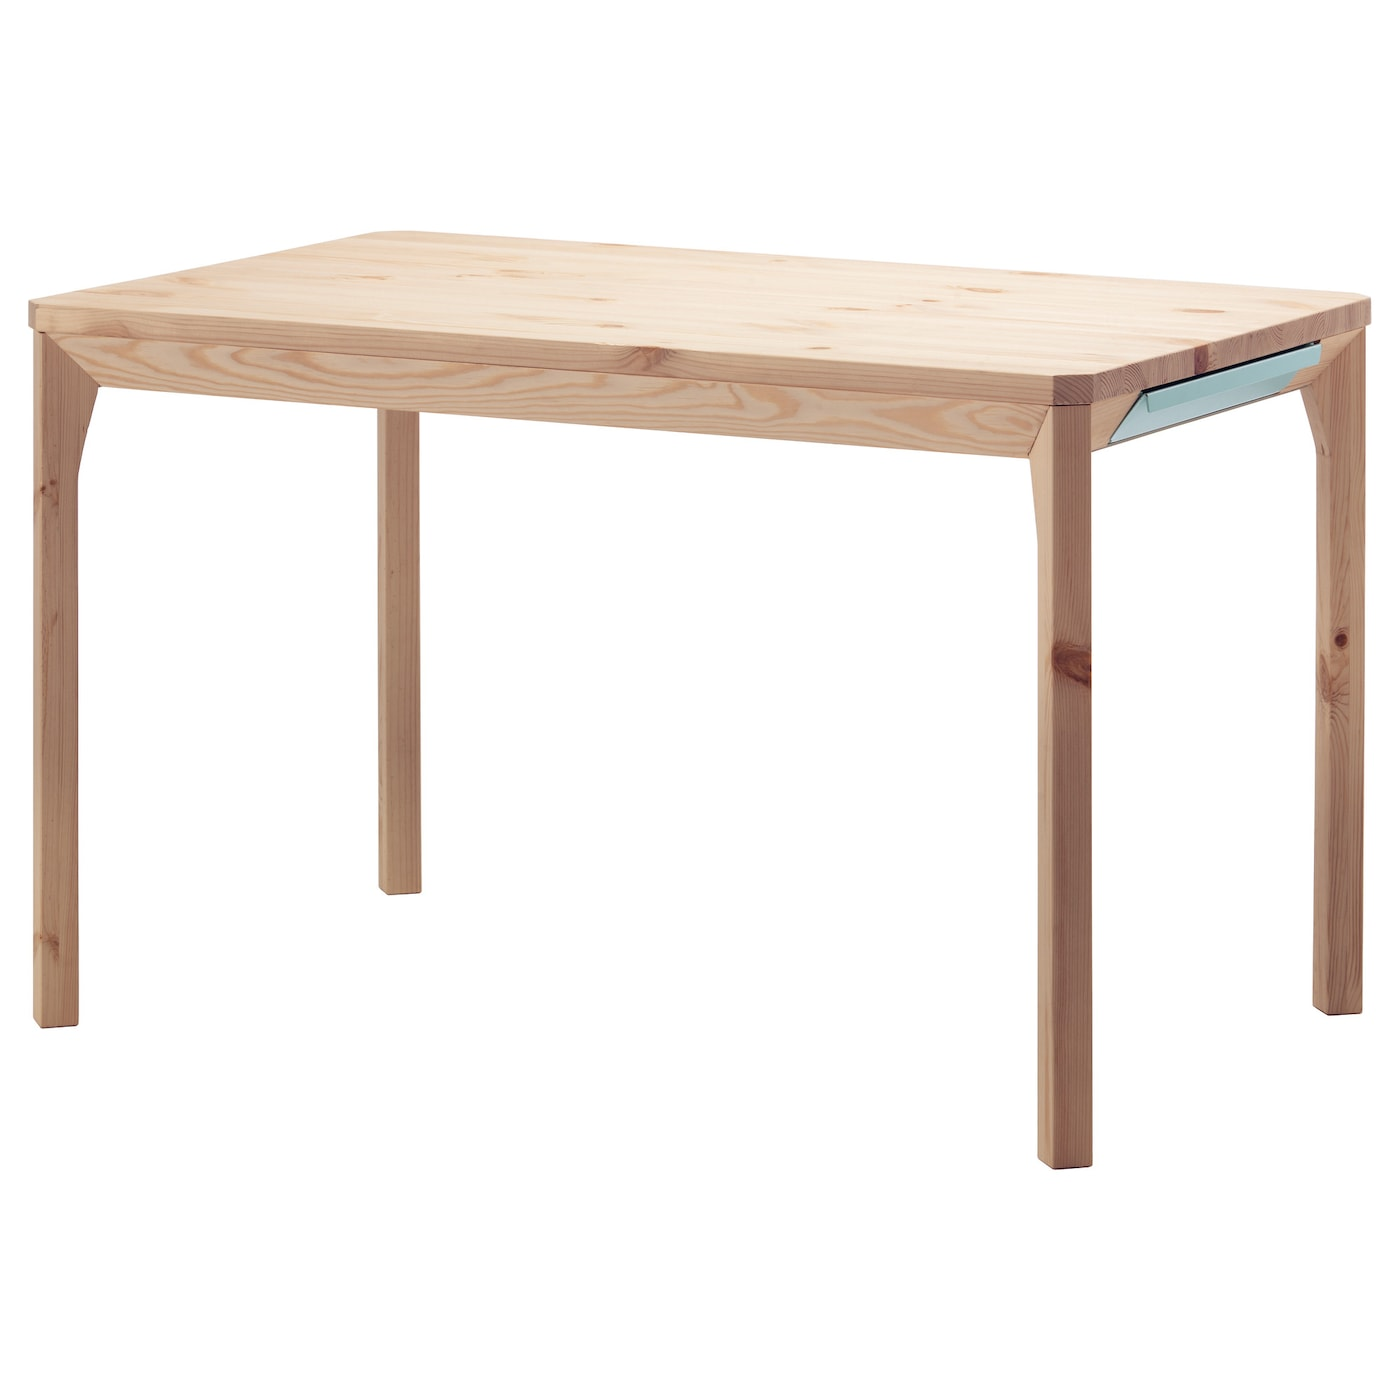 Ikea ps 2014 table pine 120x75 cm ikea for Table en pin ikea